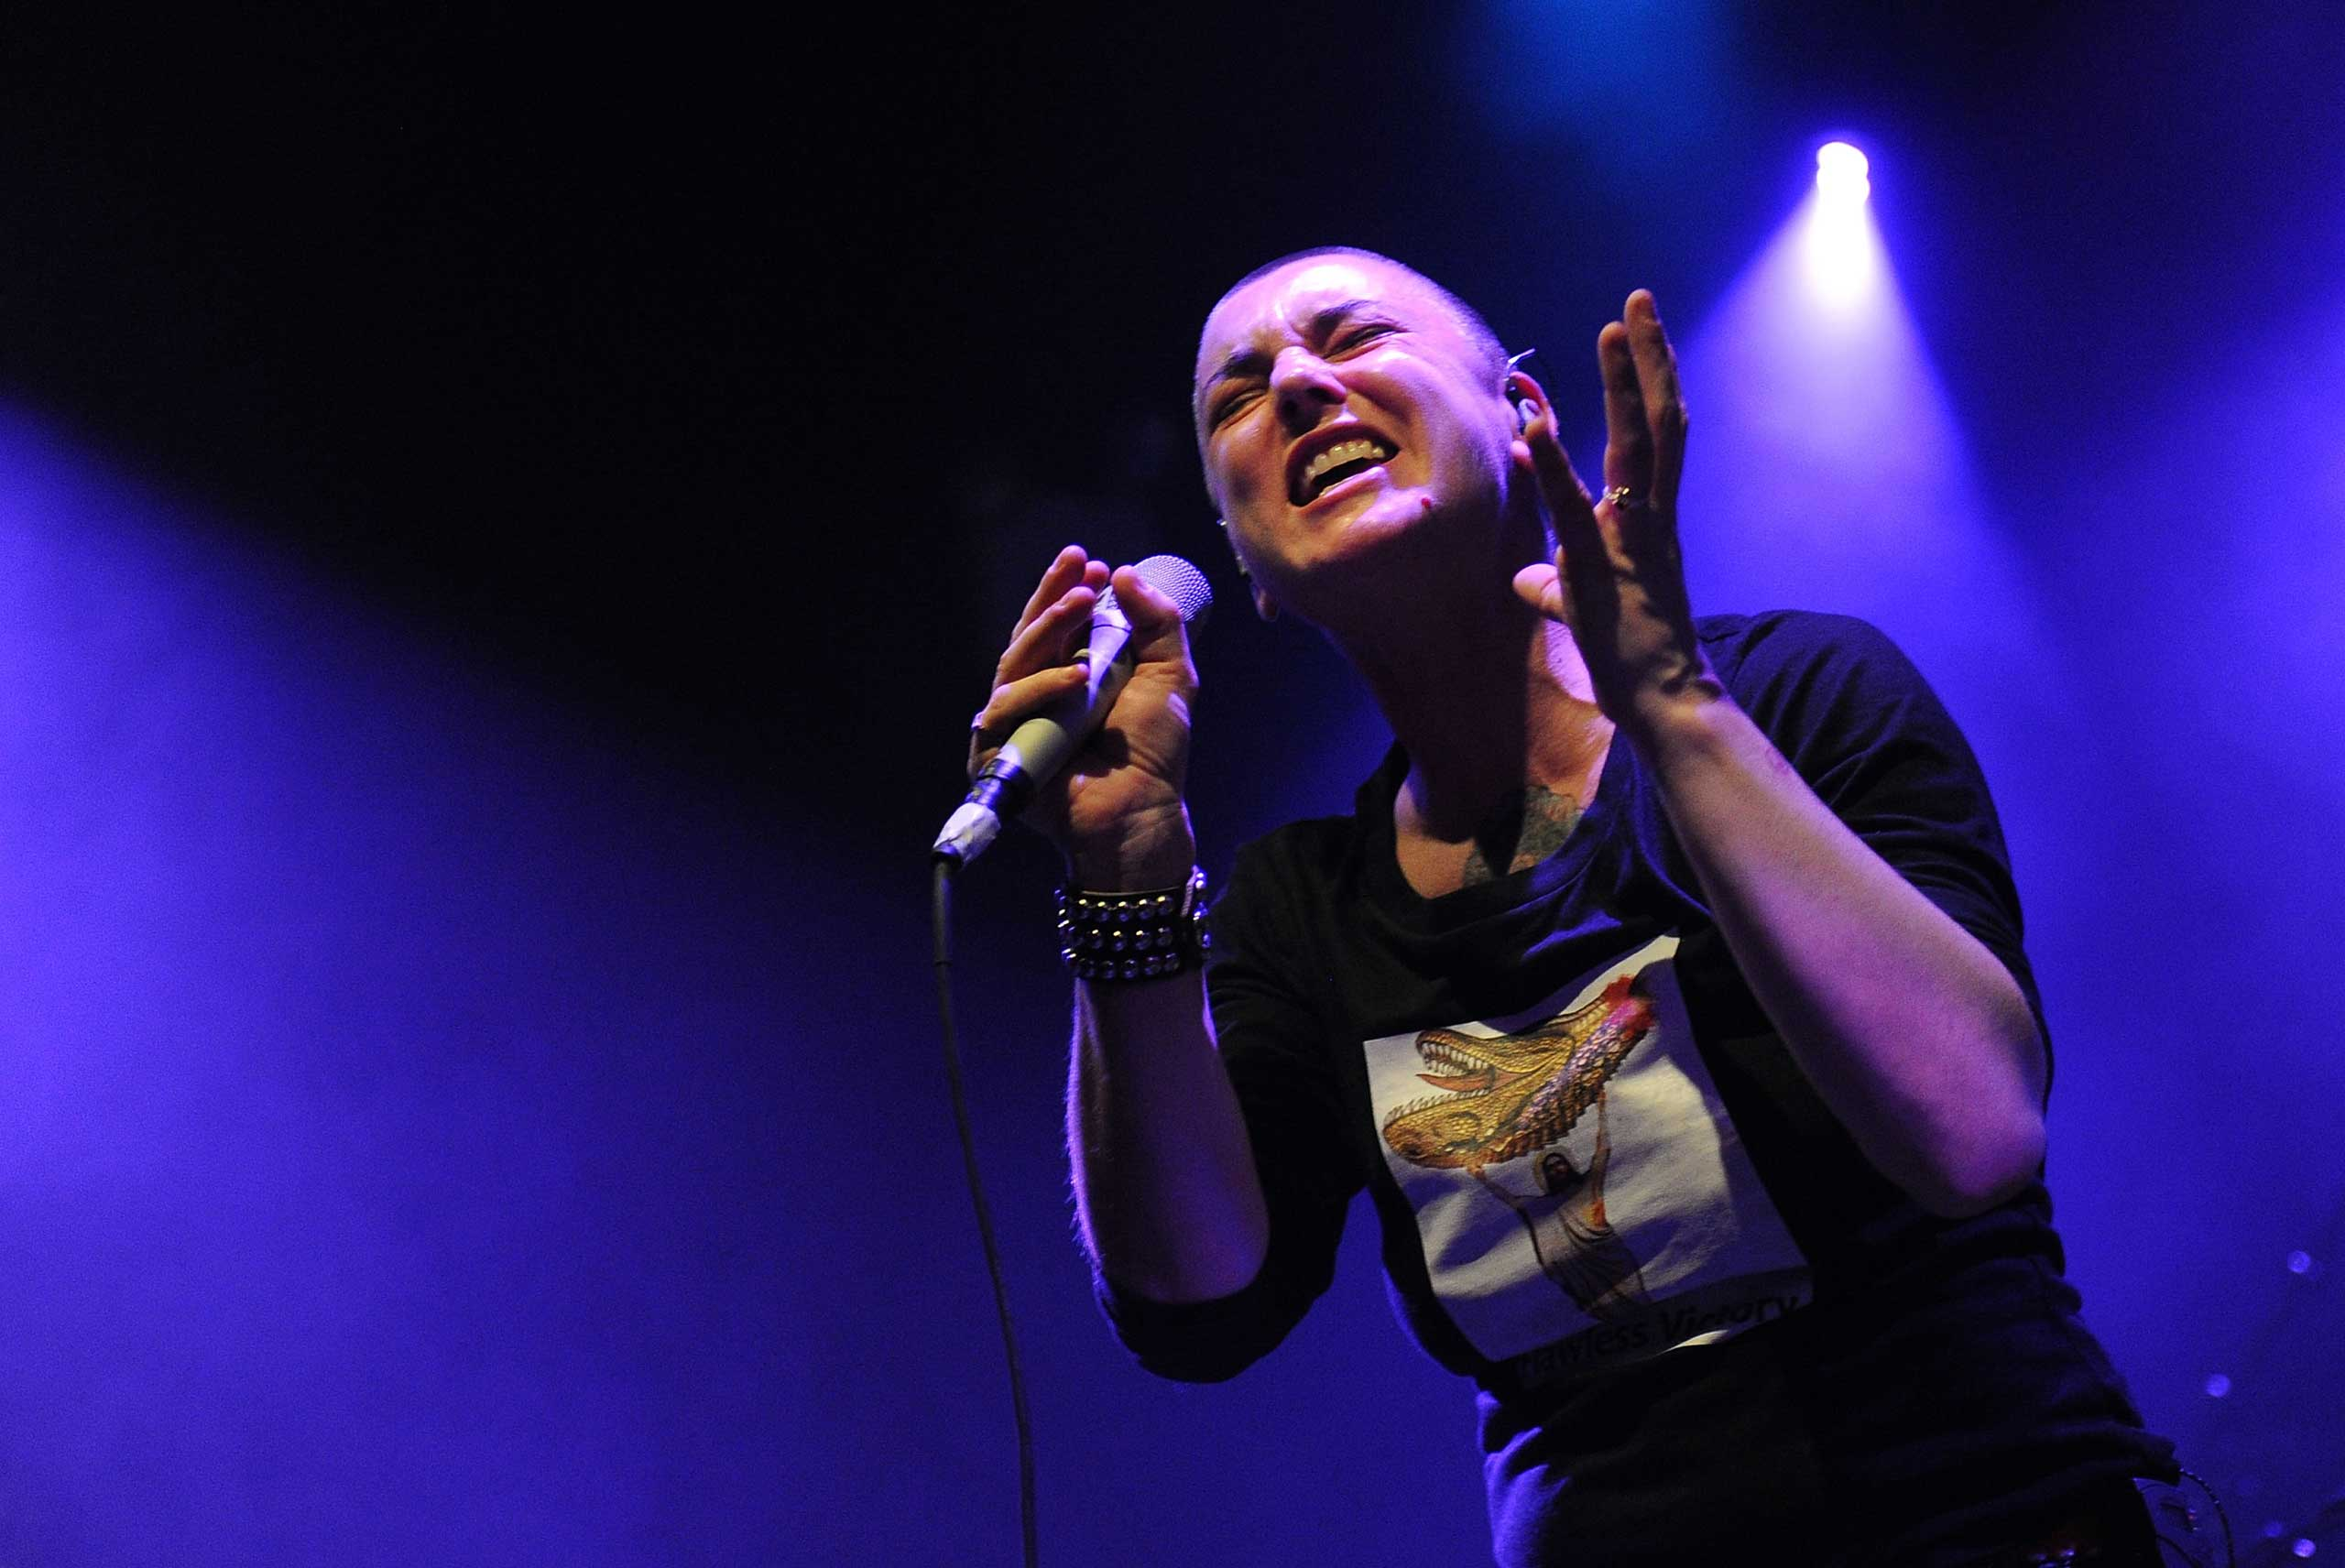 """I don't think of myself as being a feminist,"" <strong>Sinead O'Connor</strong> told <i>The Guardian</i> in July. ""I wouldn't label myself anything, certainly not something with an 'ism' or an 'ist' at the end of it. I'm not interested in anything that is in any way excluding of men."""